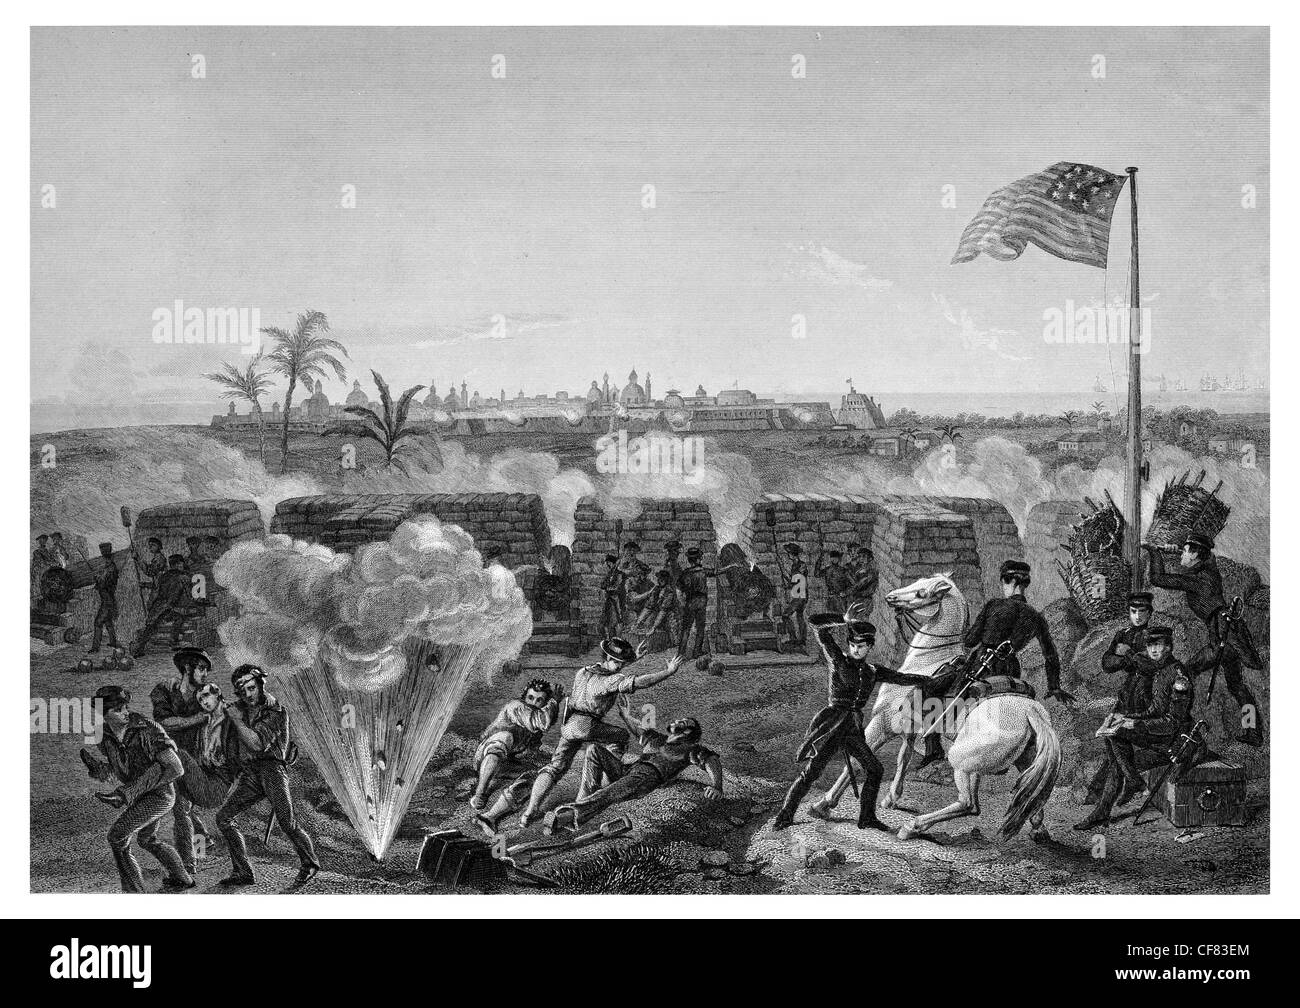 mexican war dbq Dbq the french and indian war the french and indian war is known as an unintentional war sparked by a young george washington's actions towards the french ambassador both the english and french wanted to obtain control of the ohio valley.